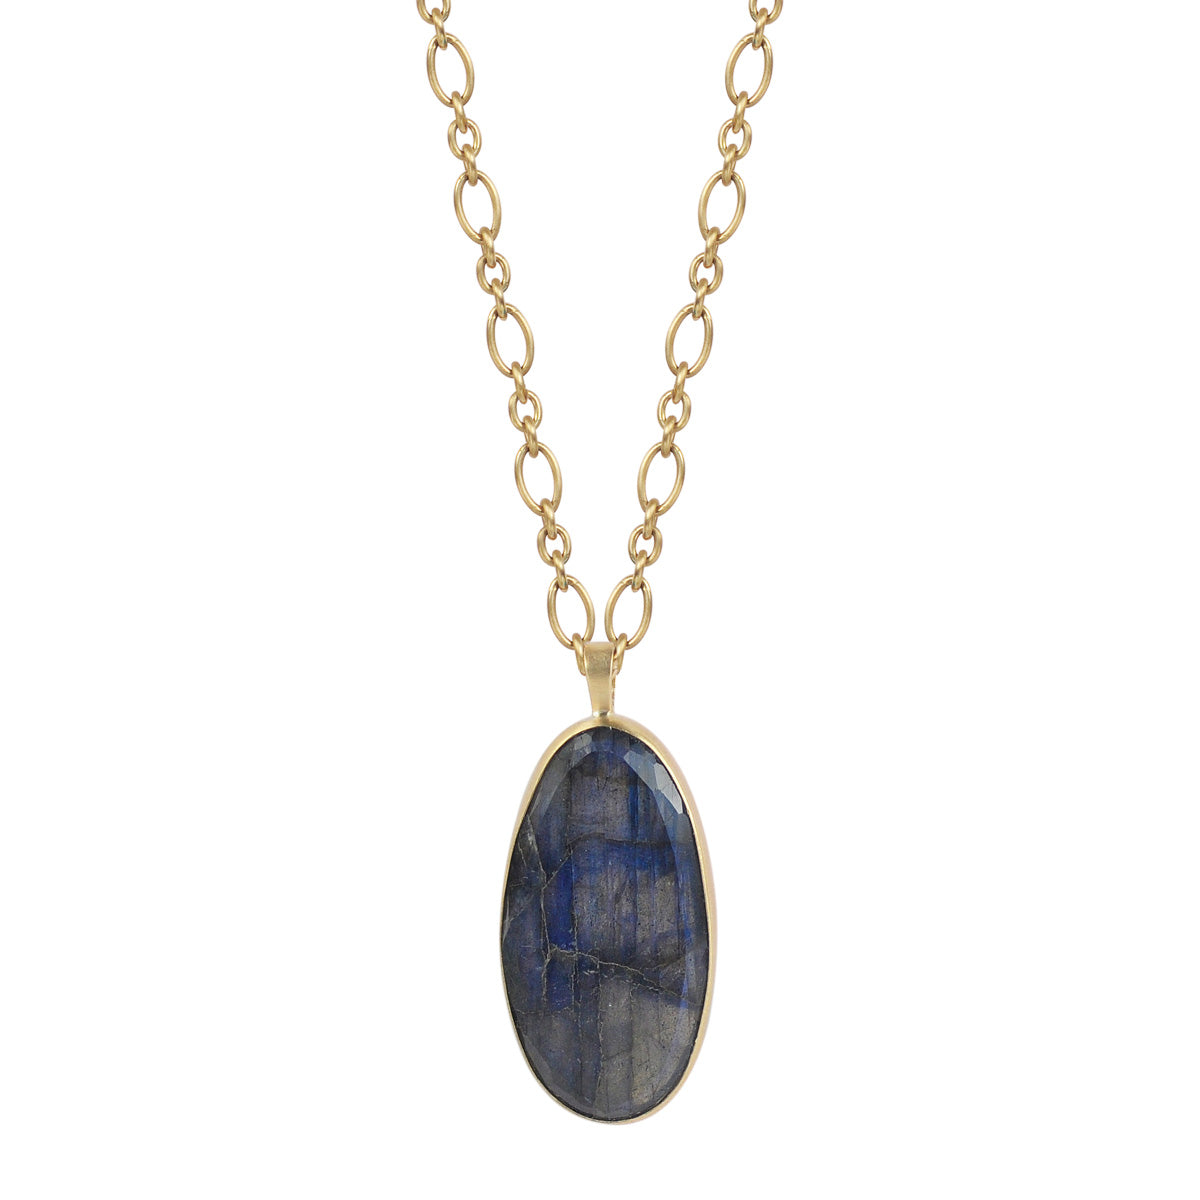 18K Gold Labradorite Oval Pendant on Trace Figaro Chain